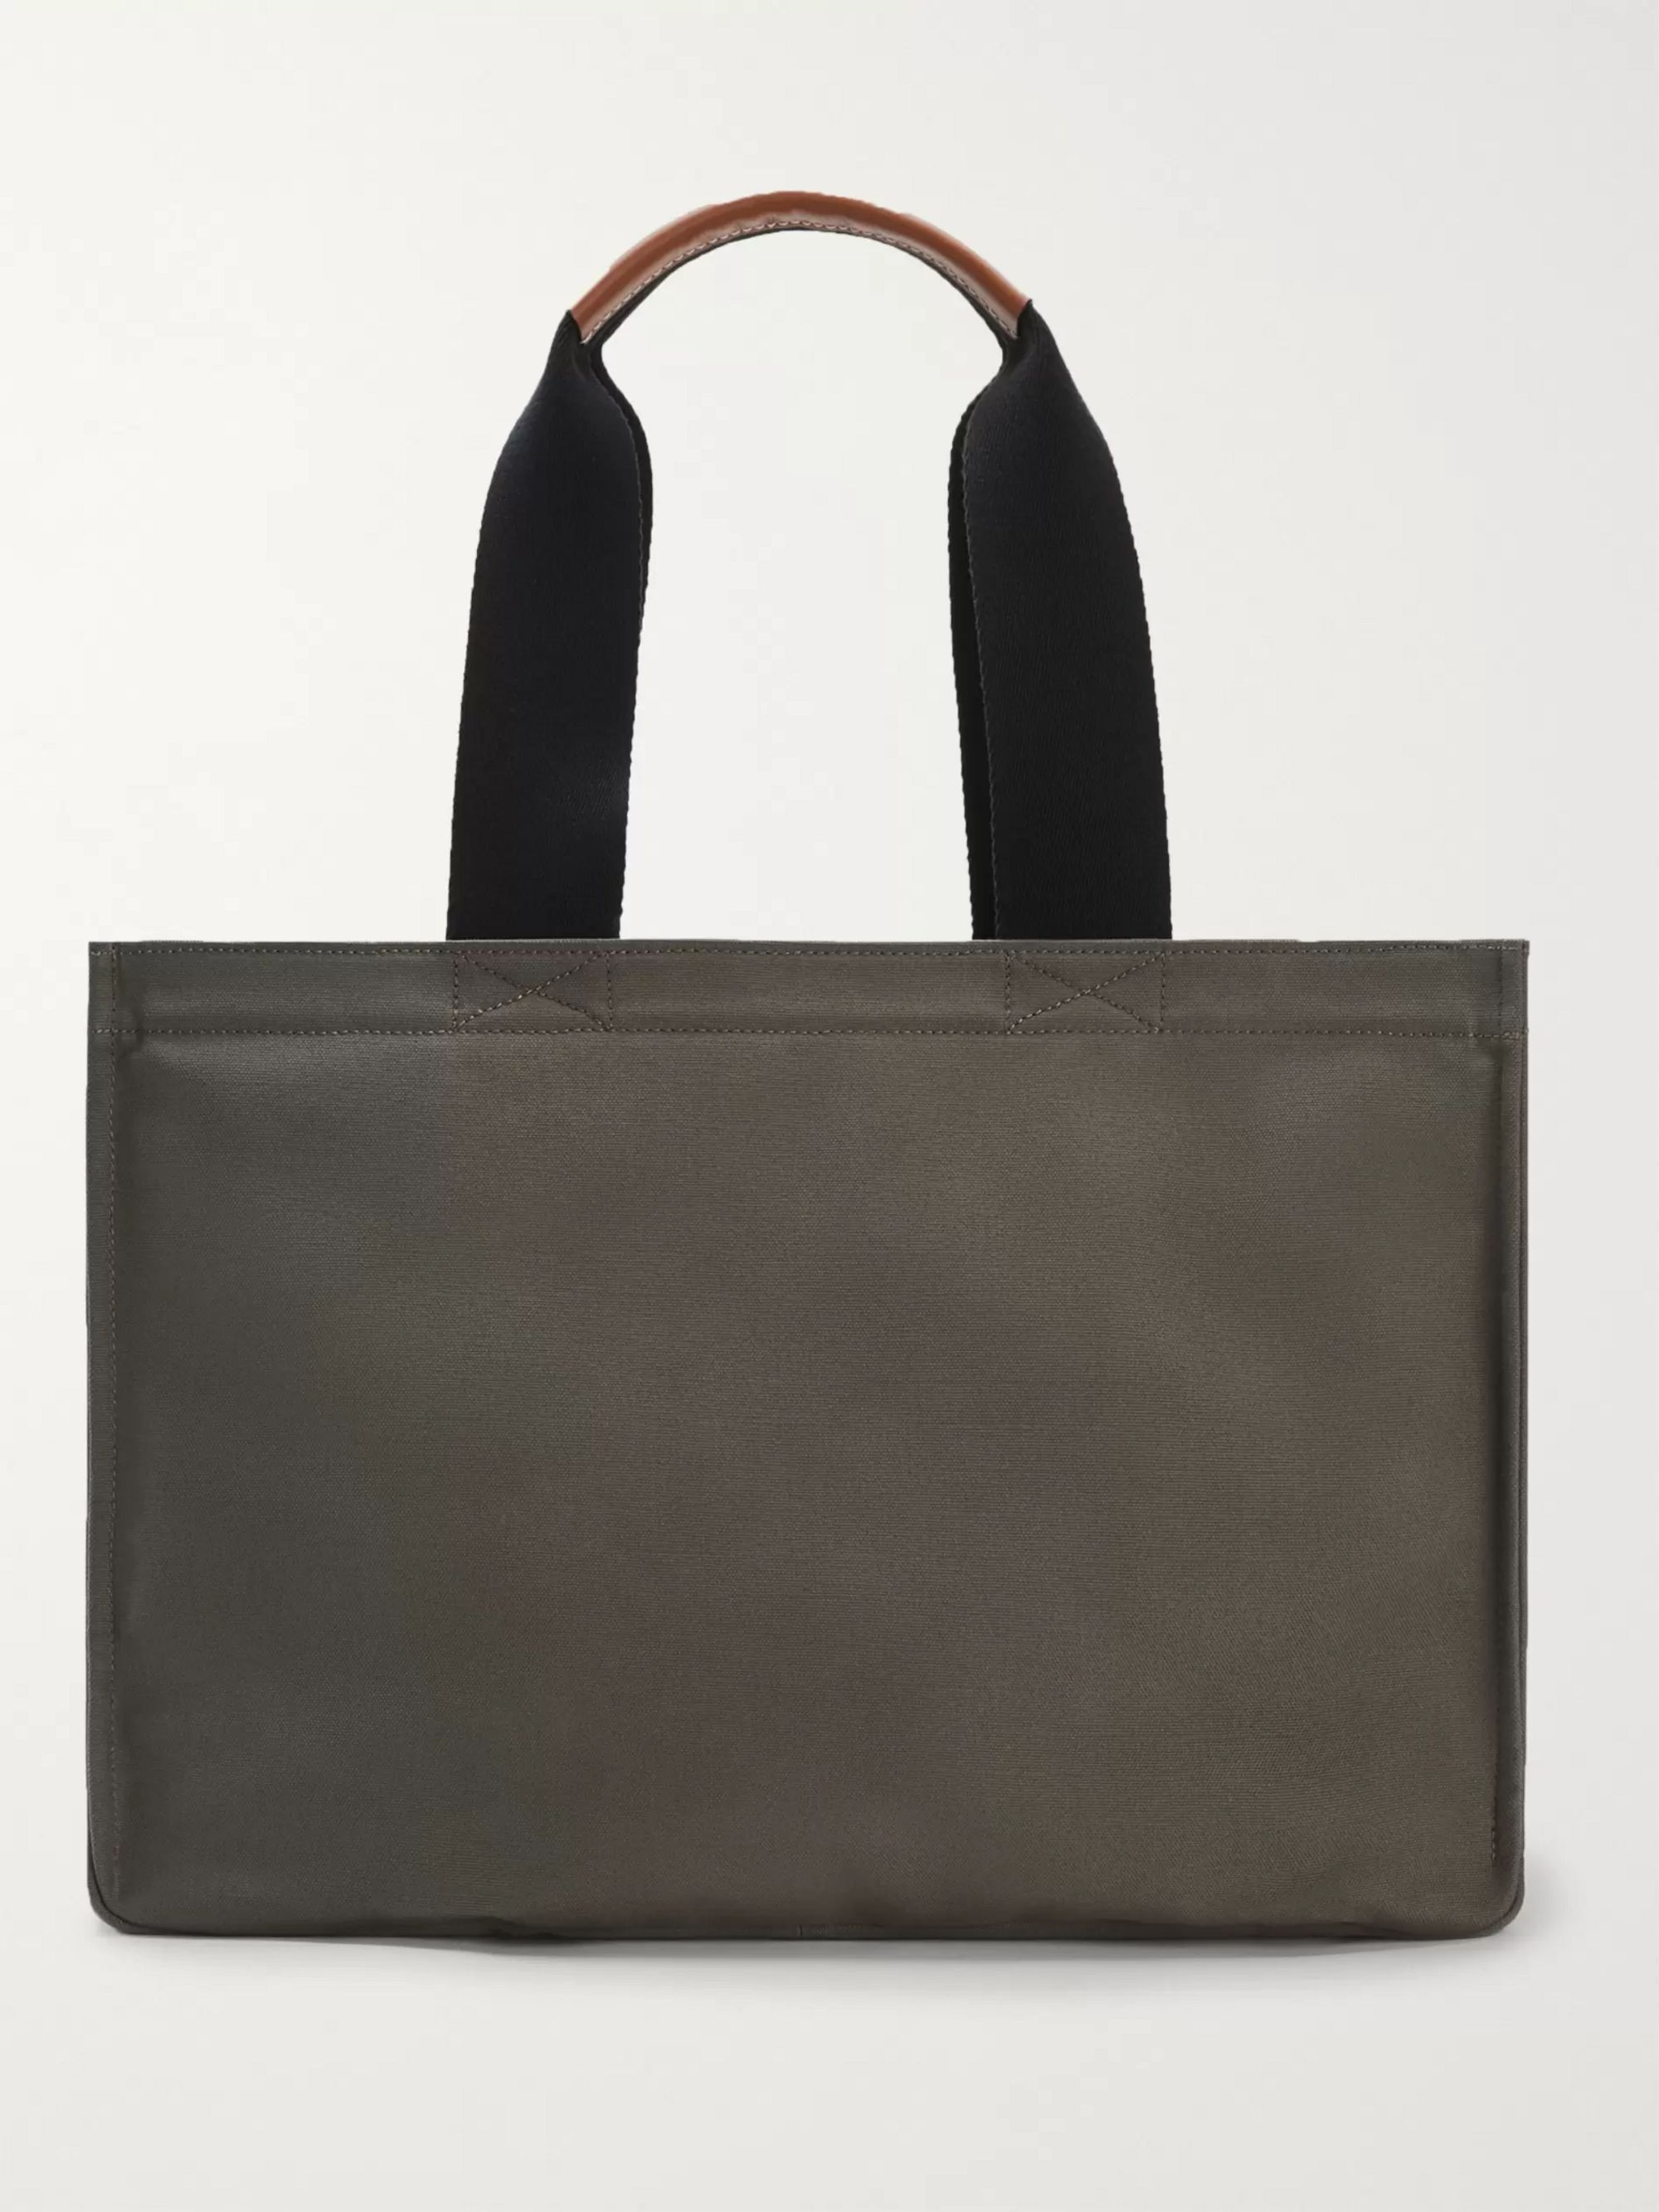 Loewe + Paula's Ibiza Logo-Appliquéd Leather-Trimmed Canvas Tote Bag